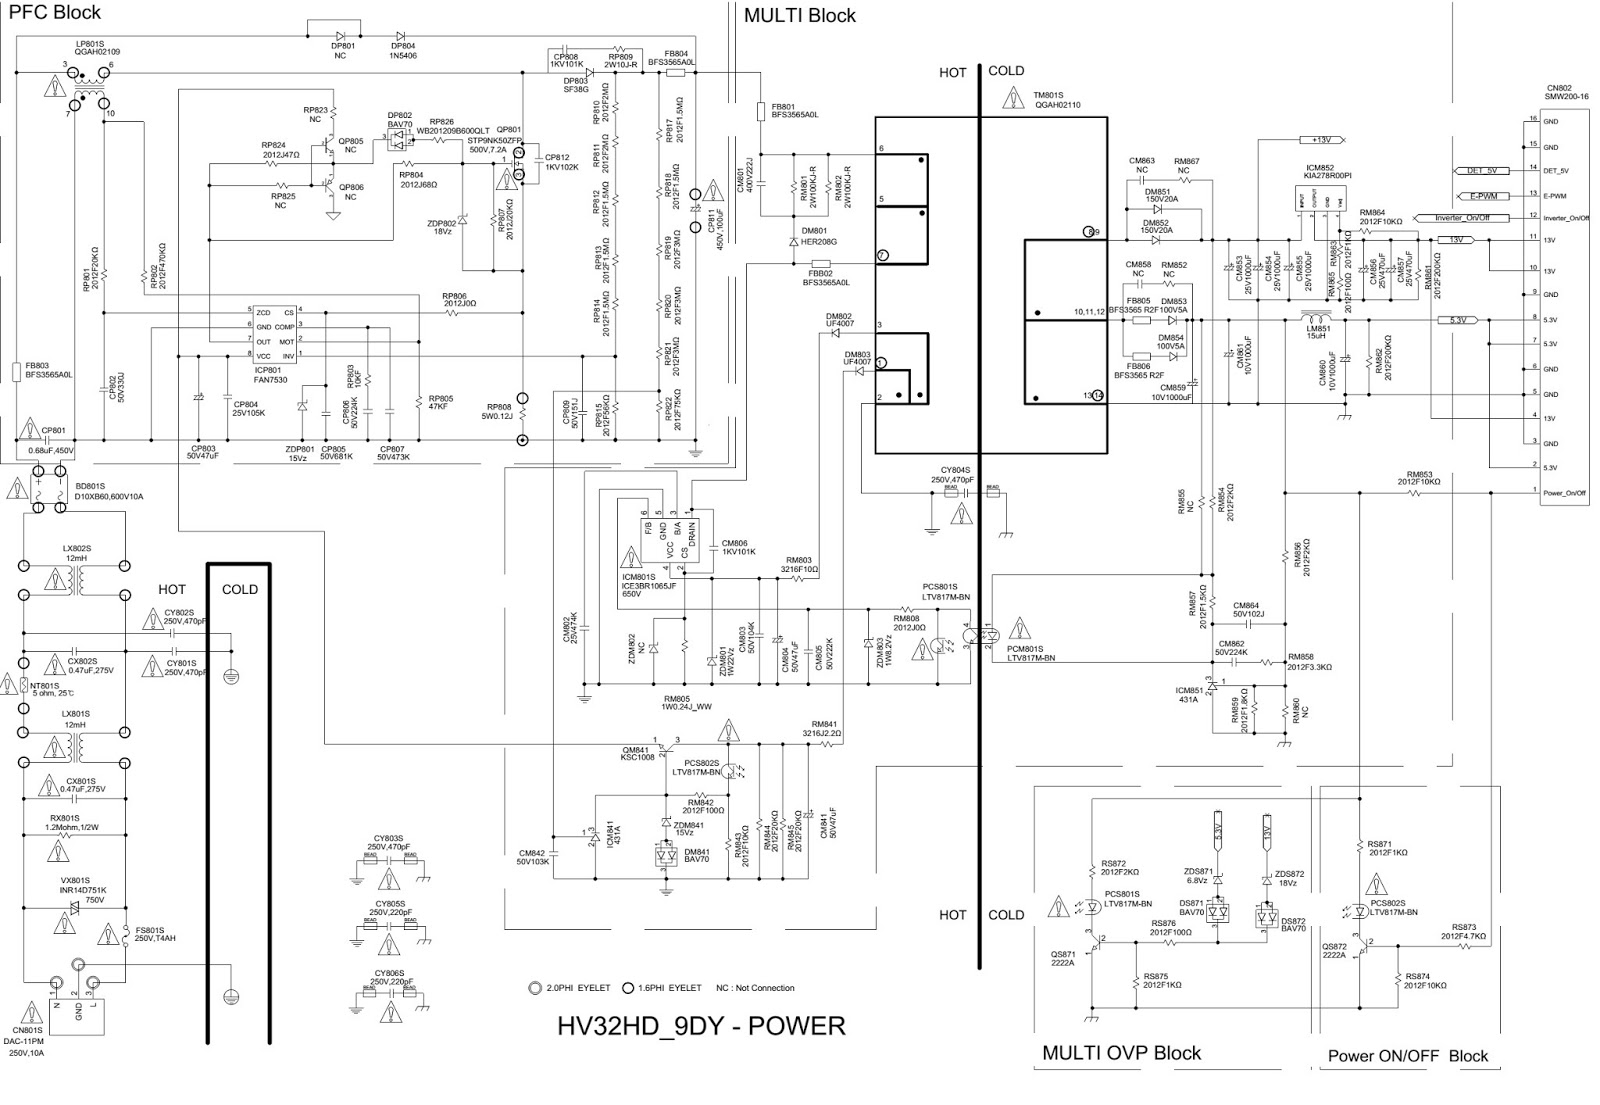 Samsung Ln26b350f1 Ln32b350f1 Tft Lcd Tv The Circuit Diagram Skema Ln 26b350f1 32b350f1